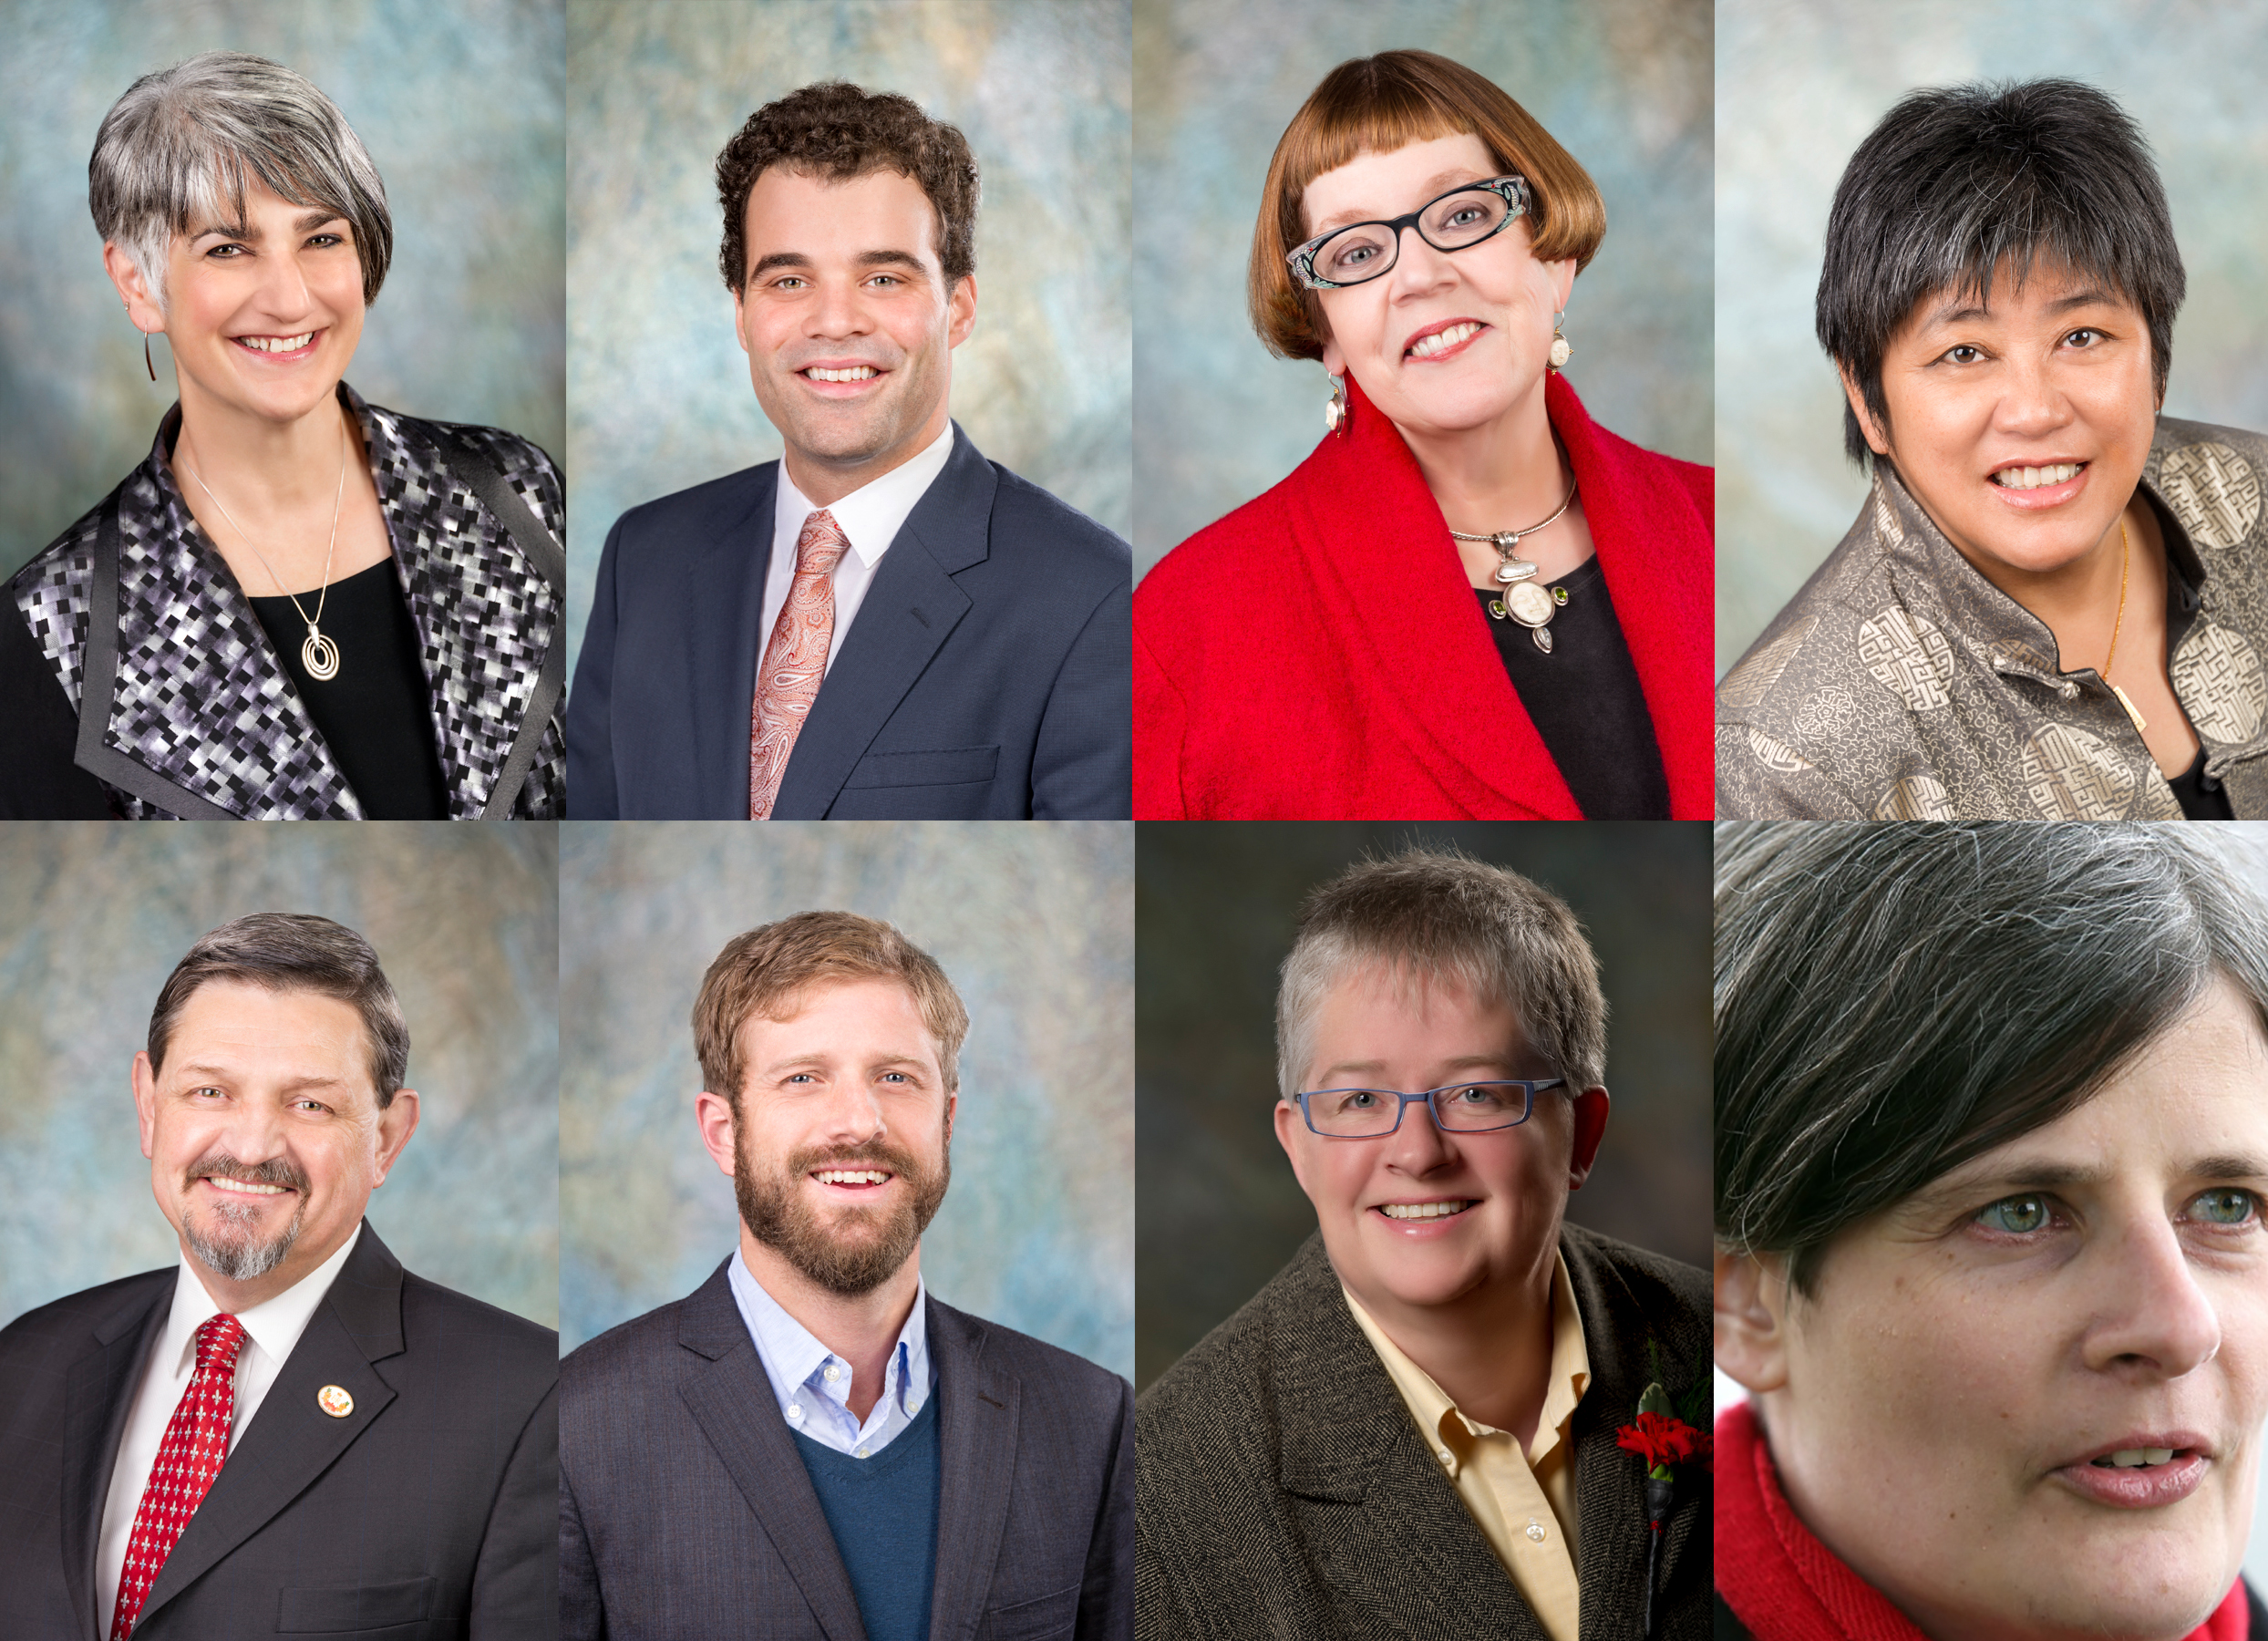 Victoria City Councillors who voted to erase history and remove a statue of Canada's founding father, clockwise from top left: Margaret Lucas, Jeremy Loveday, Pamela Madoff, Charlayne Tomton-Joe, Chris Coleman, Ben Isitt, Marianne Alto, and of course, Mayor Lisa Helps. Photo Credit: City of Victoria